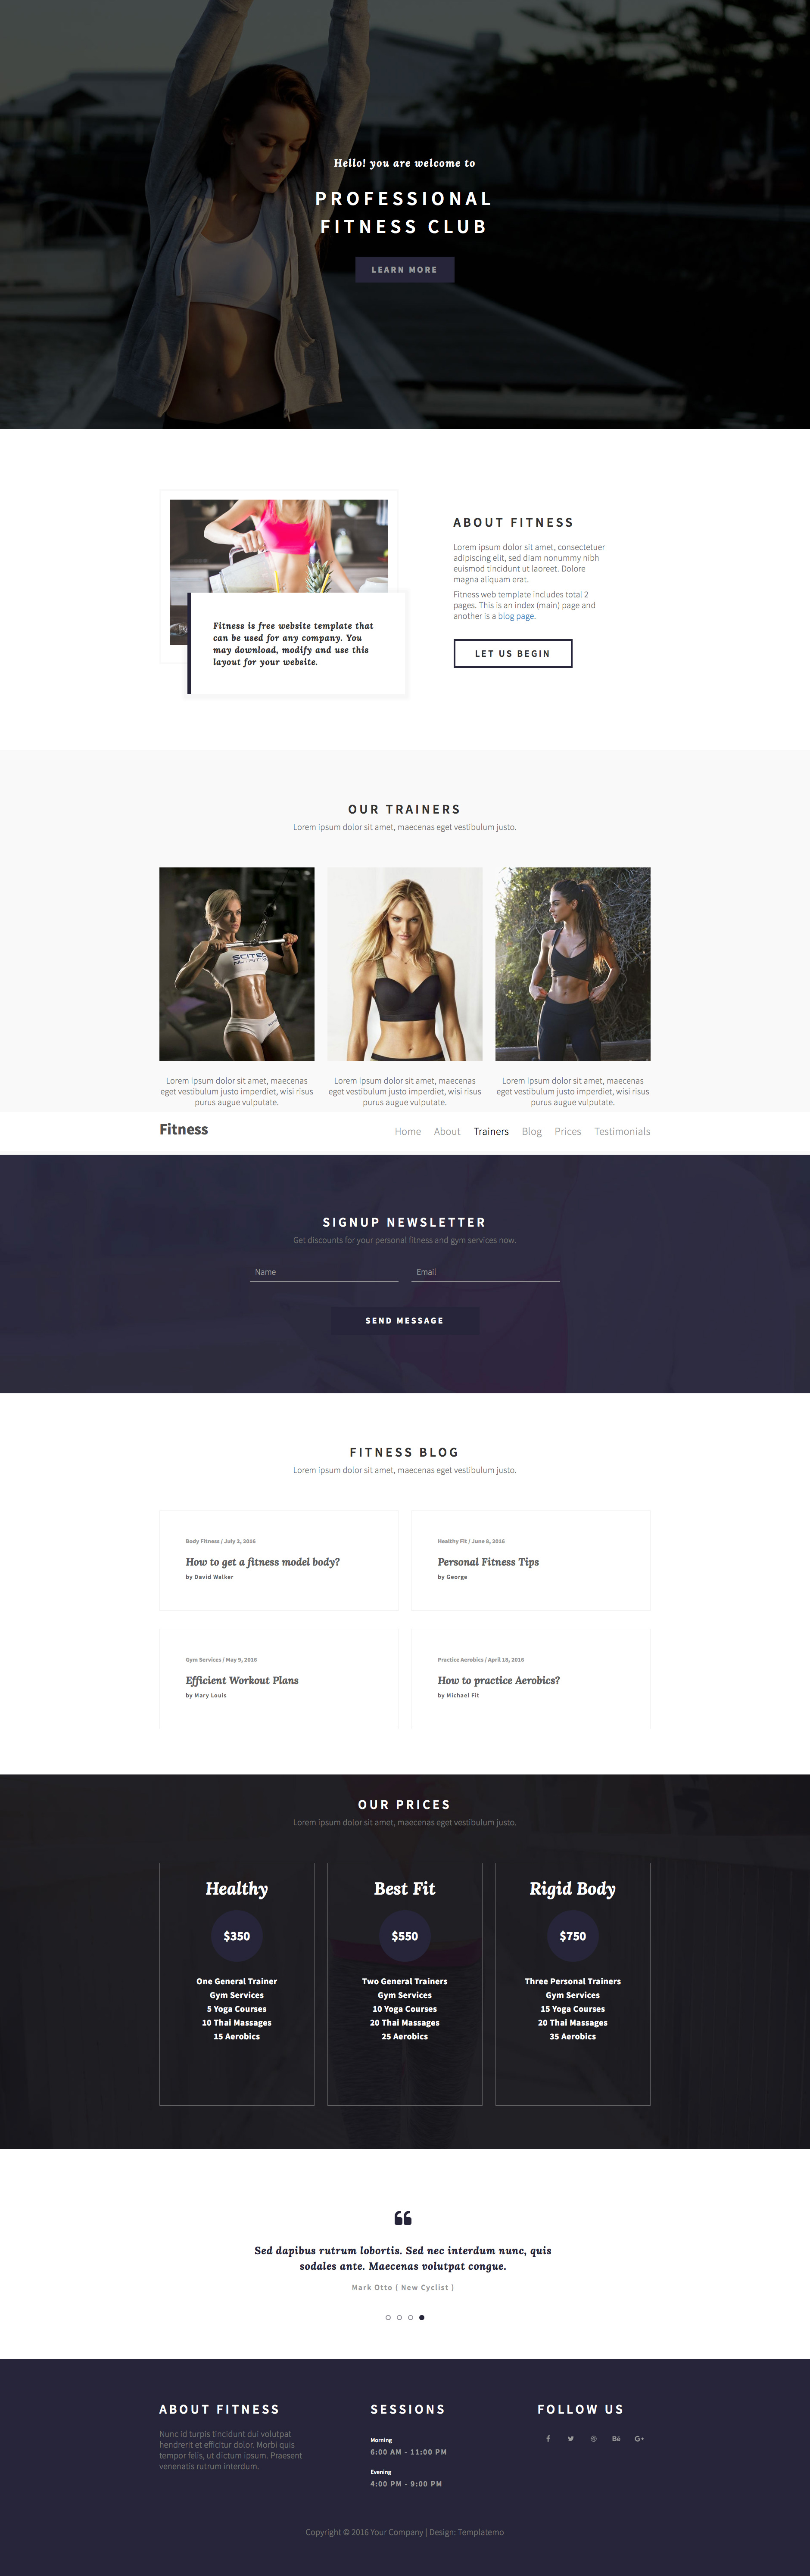 Fitness Free Responsive HTML Bootstrap One Page Template - Html5 web page template